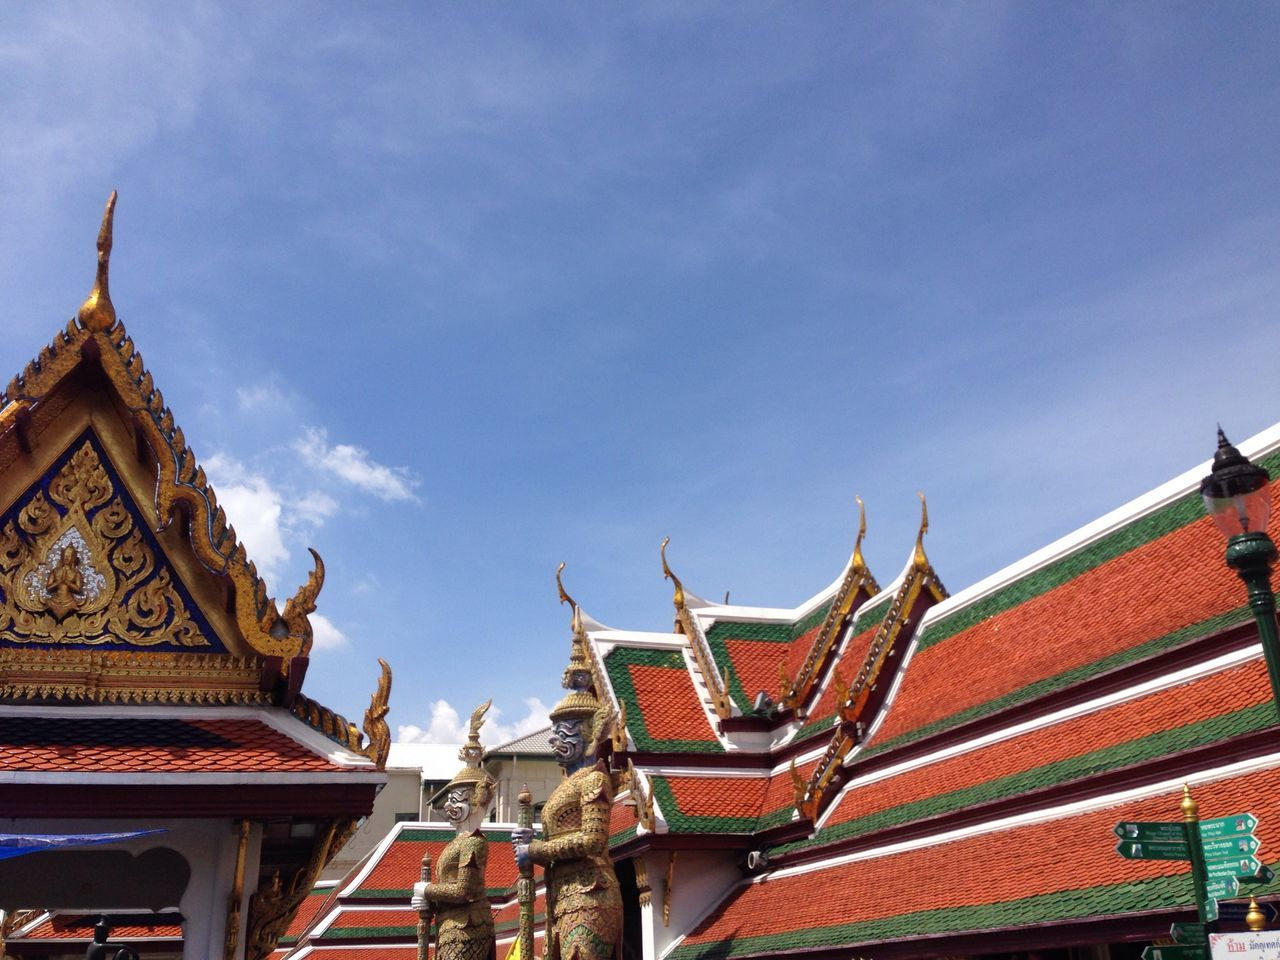 Architectural Feature Architecture Blue Built Structure Cloud Cloud - Sky Culture Cultures Day Design High Section Low Angle View No People Ornate Outdoors Place Of Worship Roof Sky Temple Temple - Building The Architect - 2016 EyeEm Awards